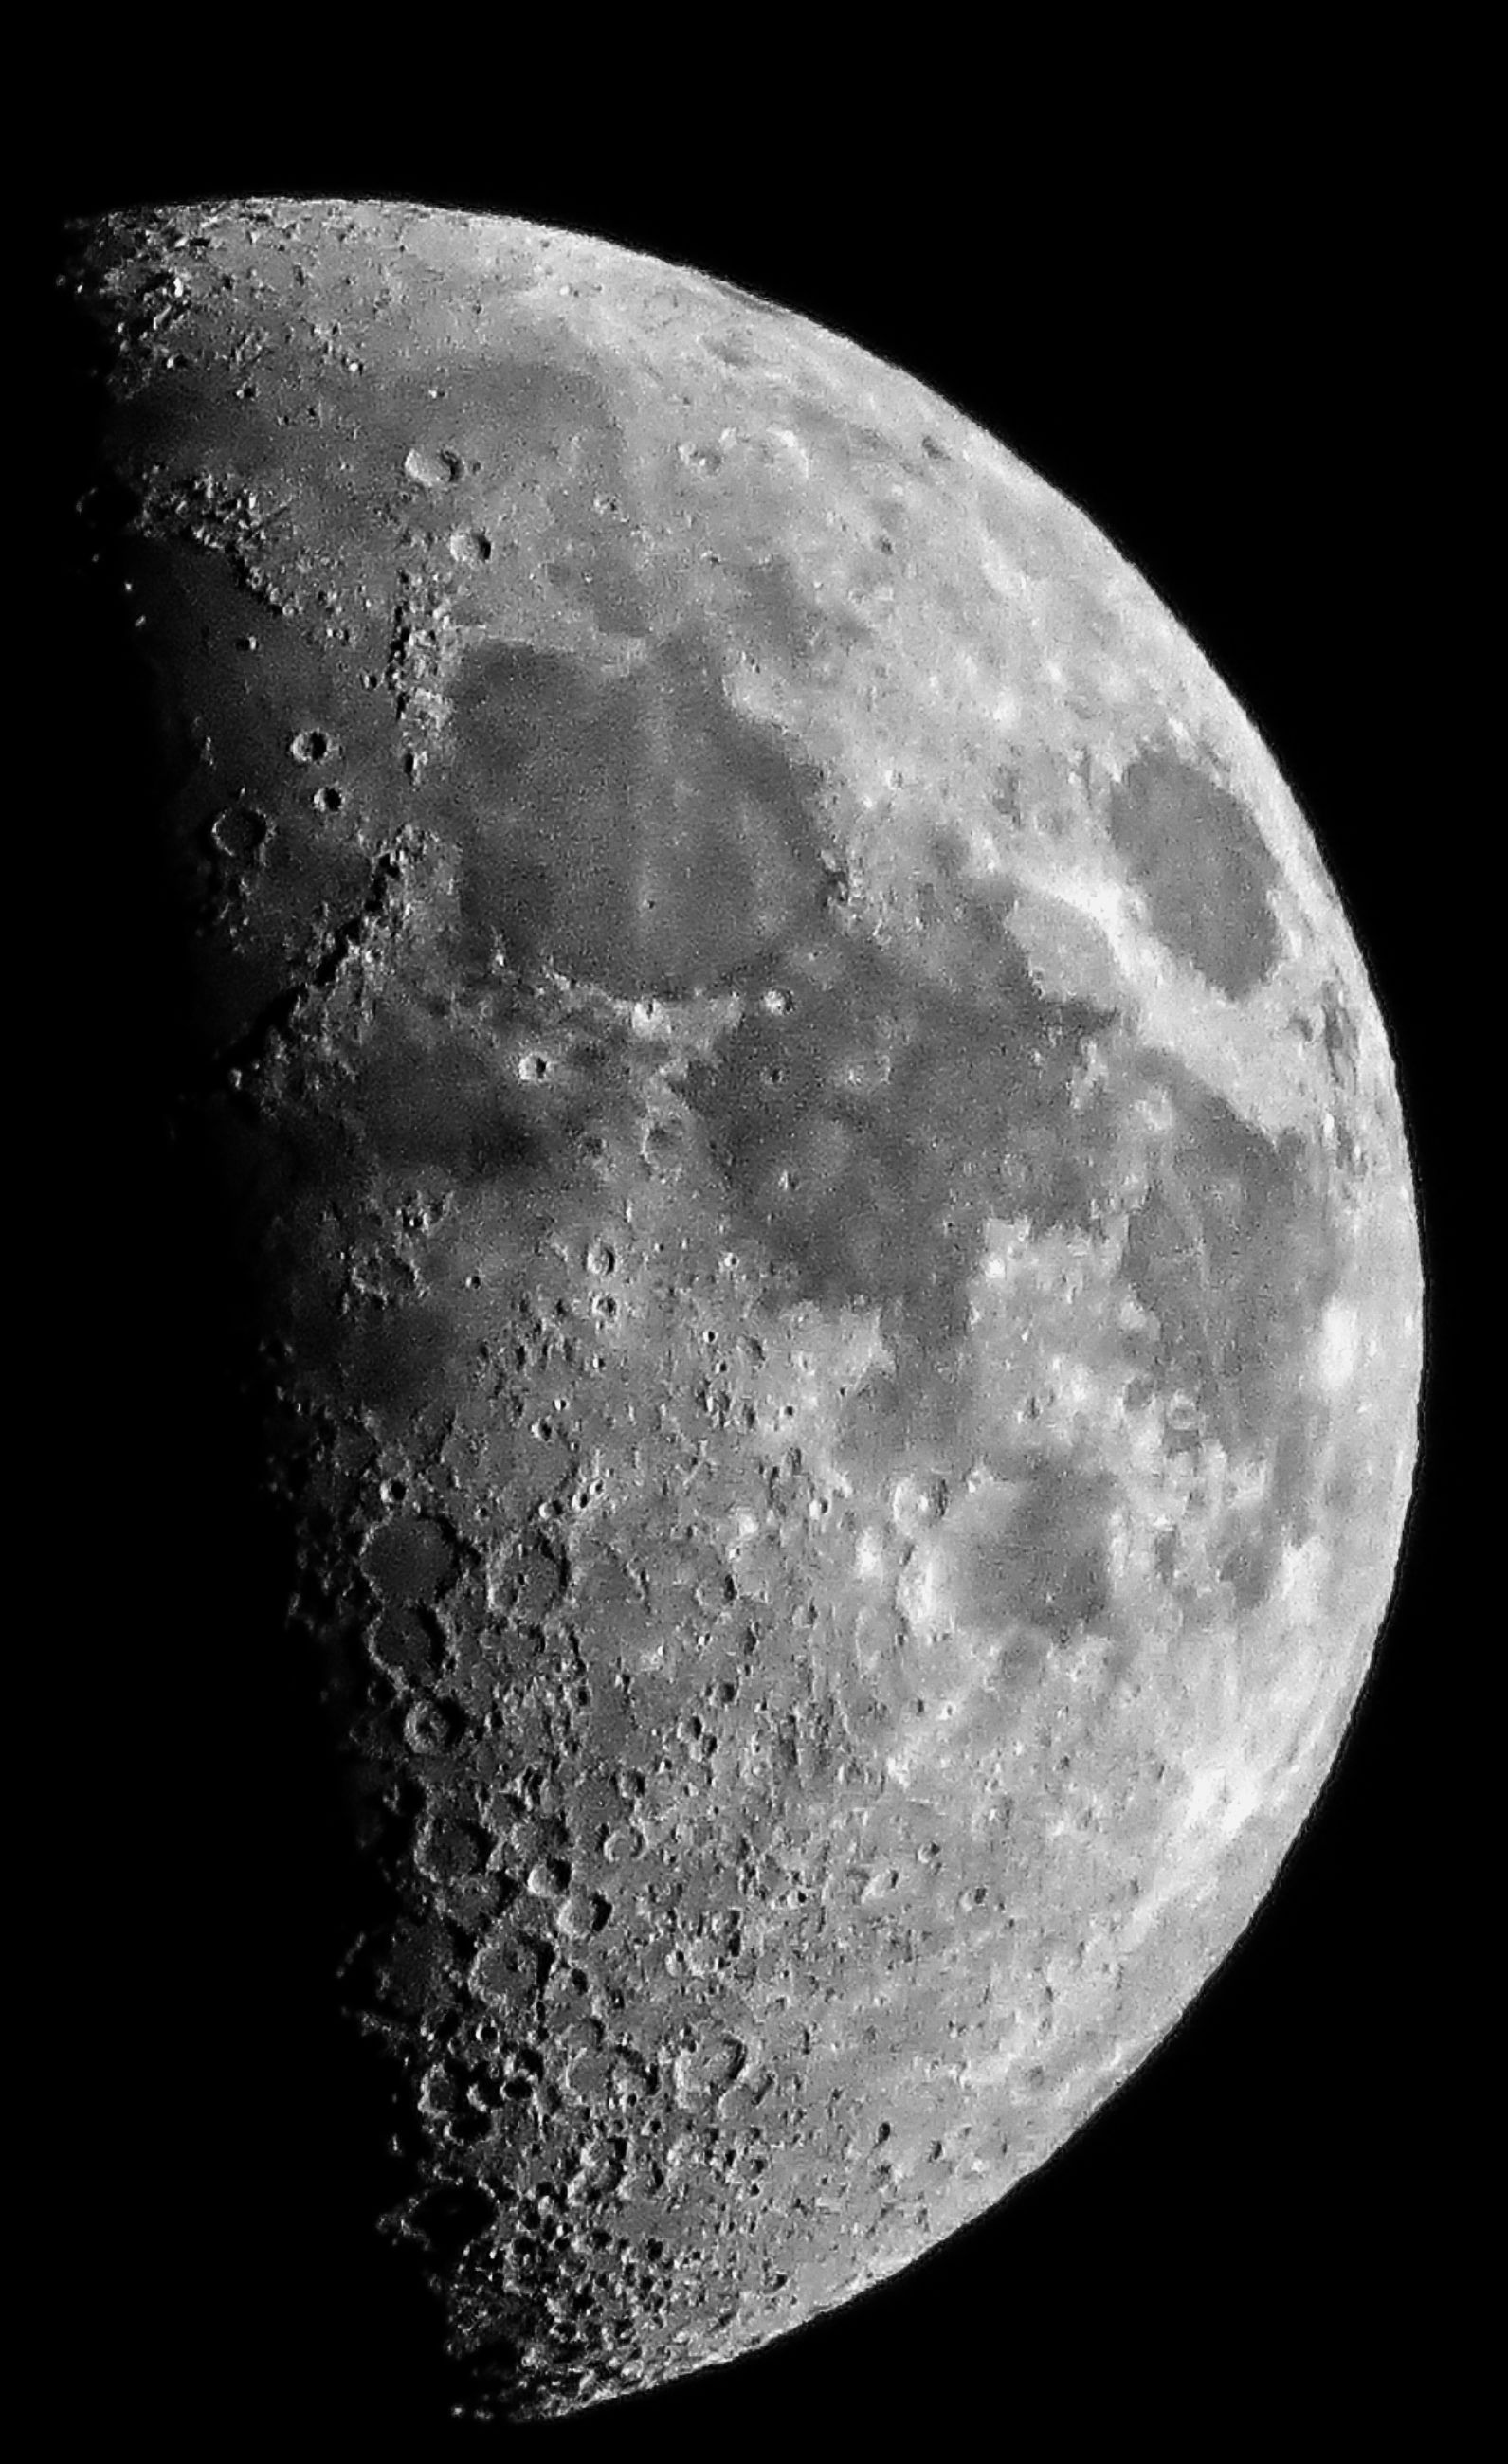 black background, moon surface, abstract, night, no people, particle, nature, astronomy